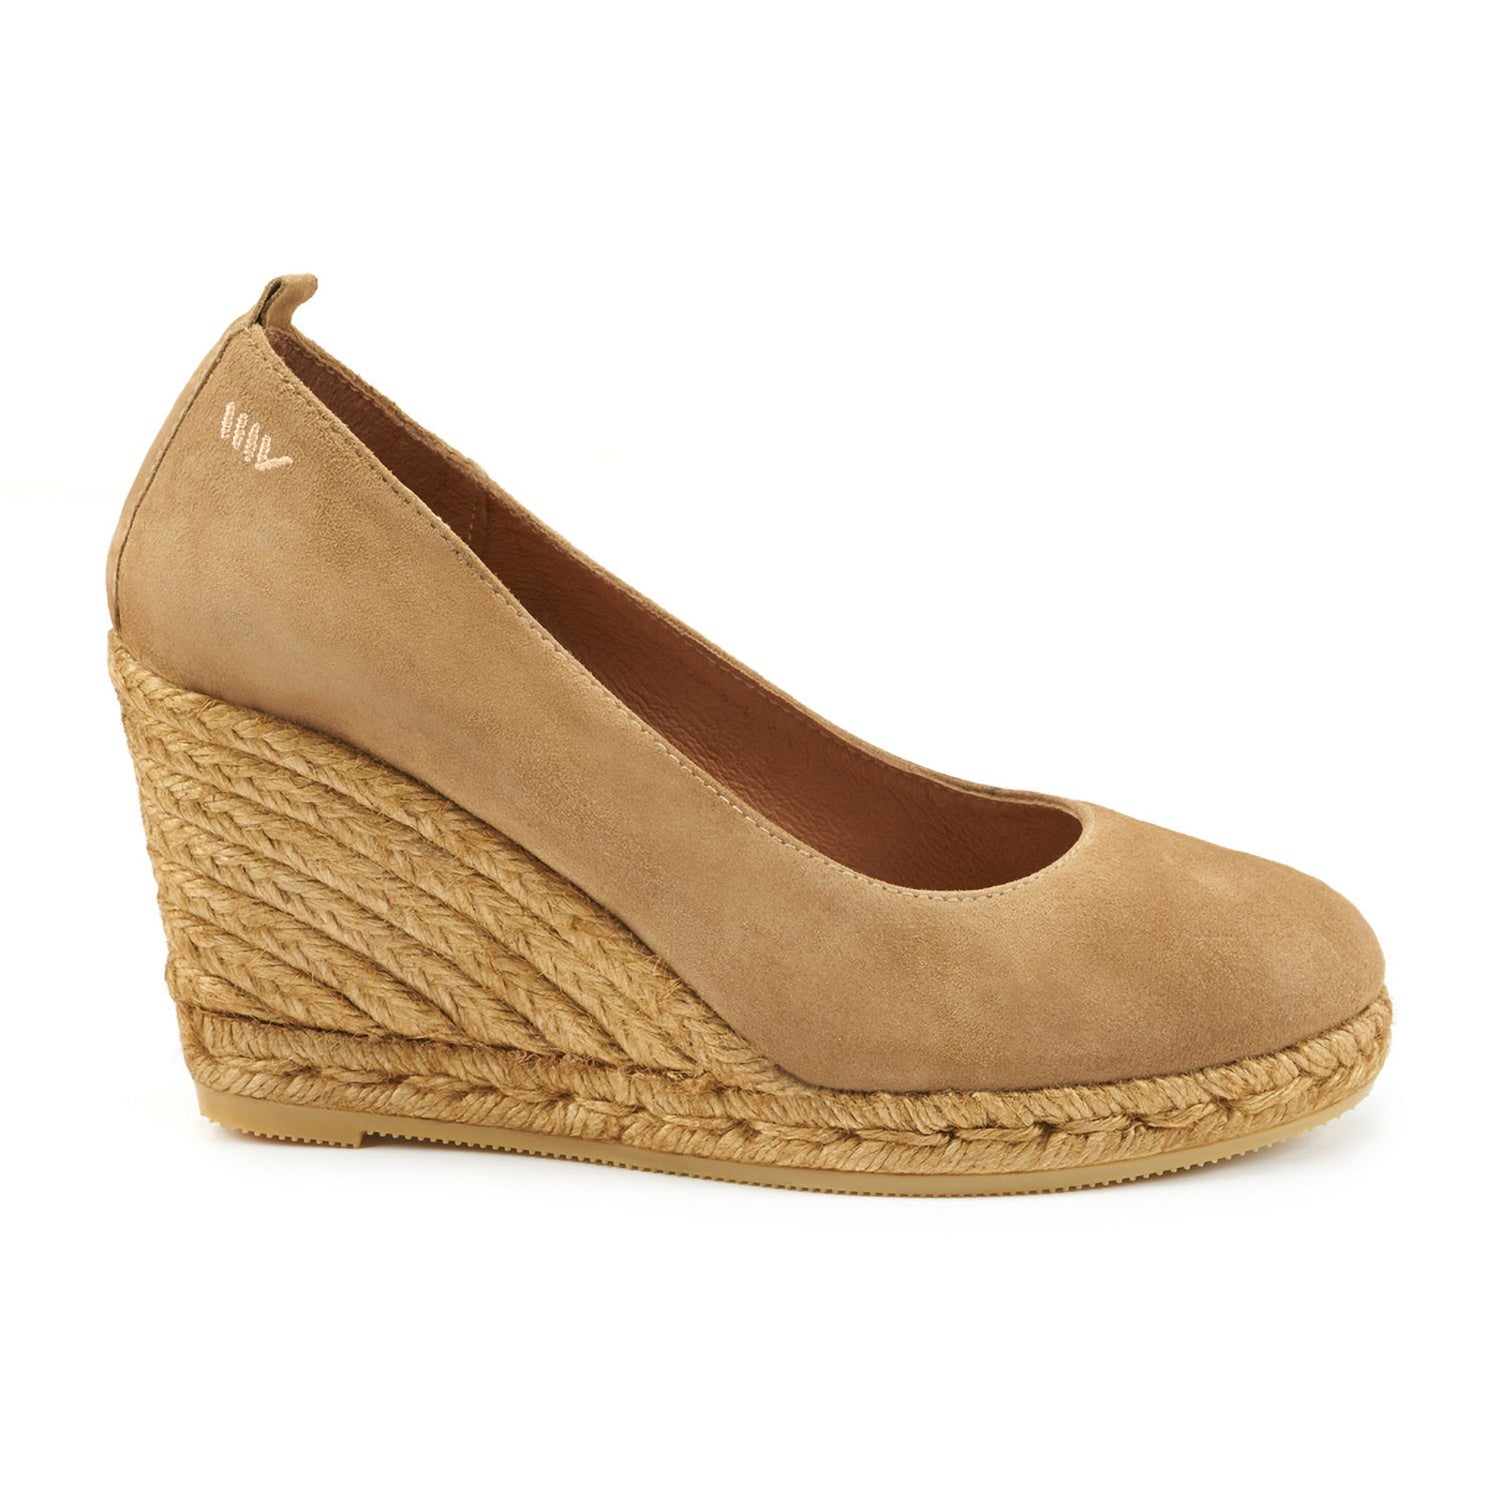 Marquesa Suede Wedge Pumps for Women by